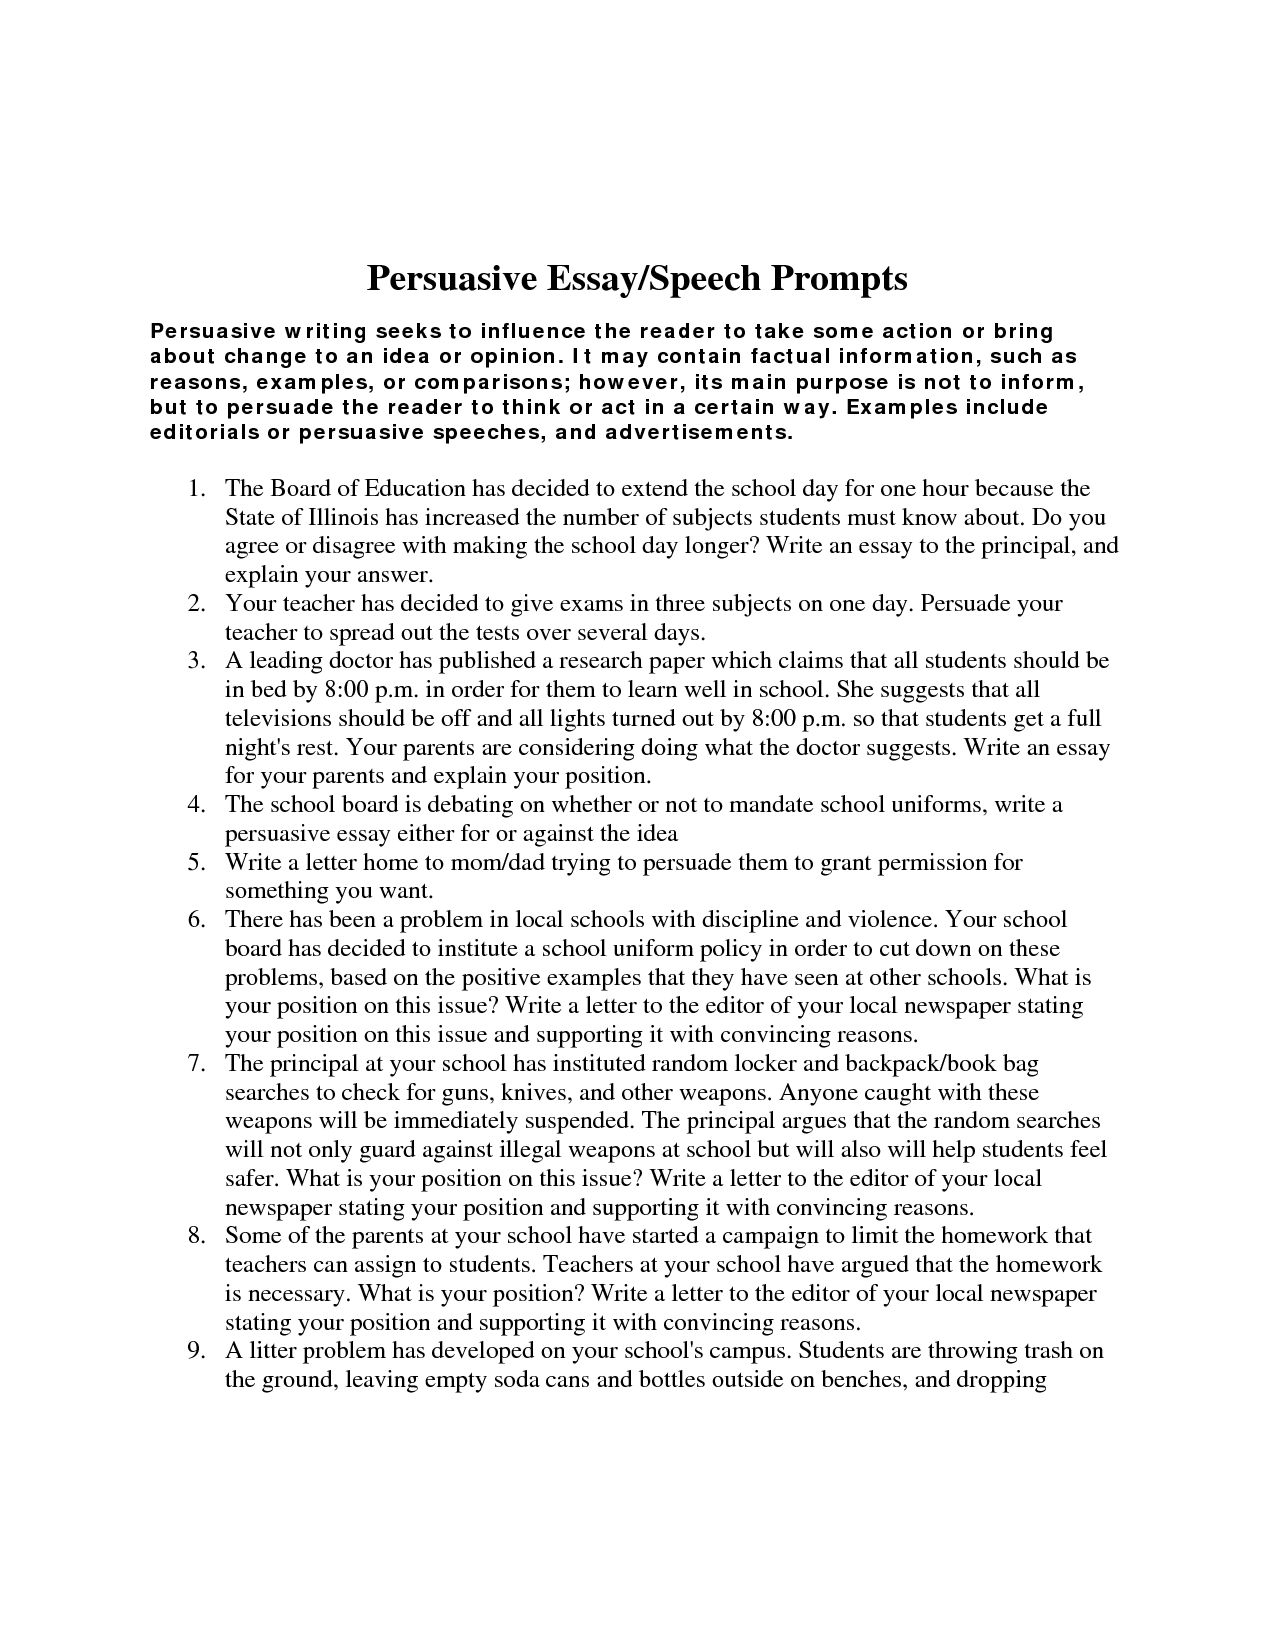 persuasive and argumentative writing | argumentative essay | Pinterest